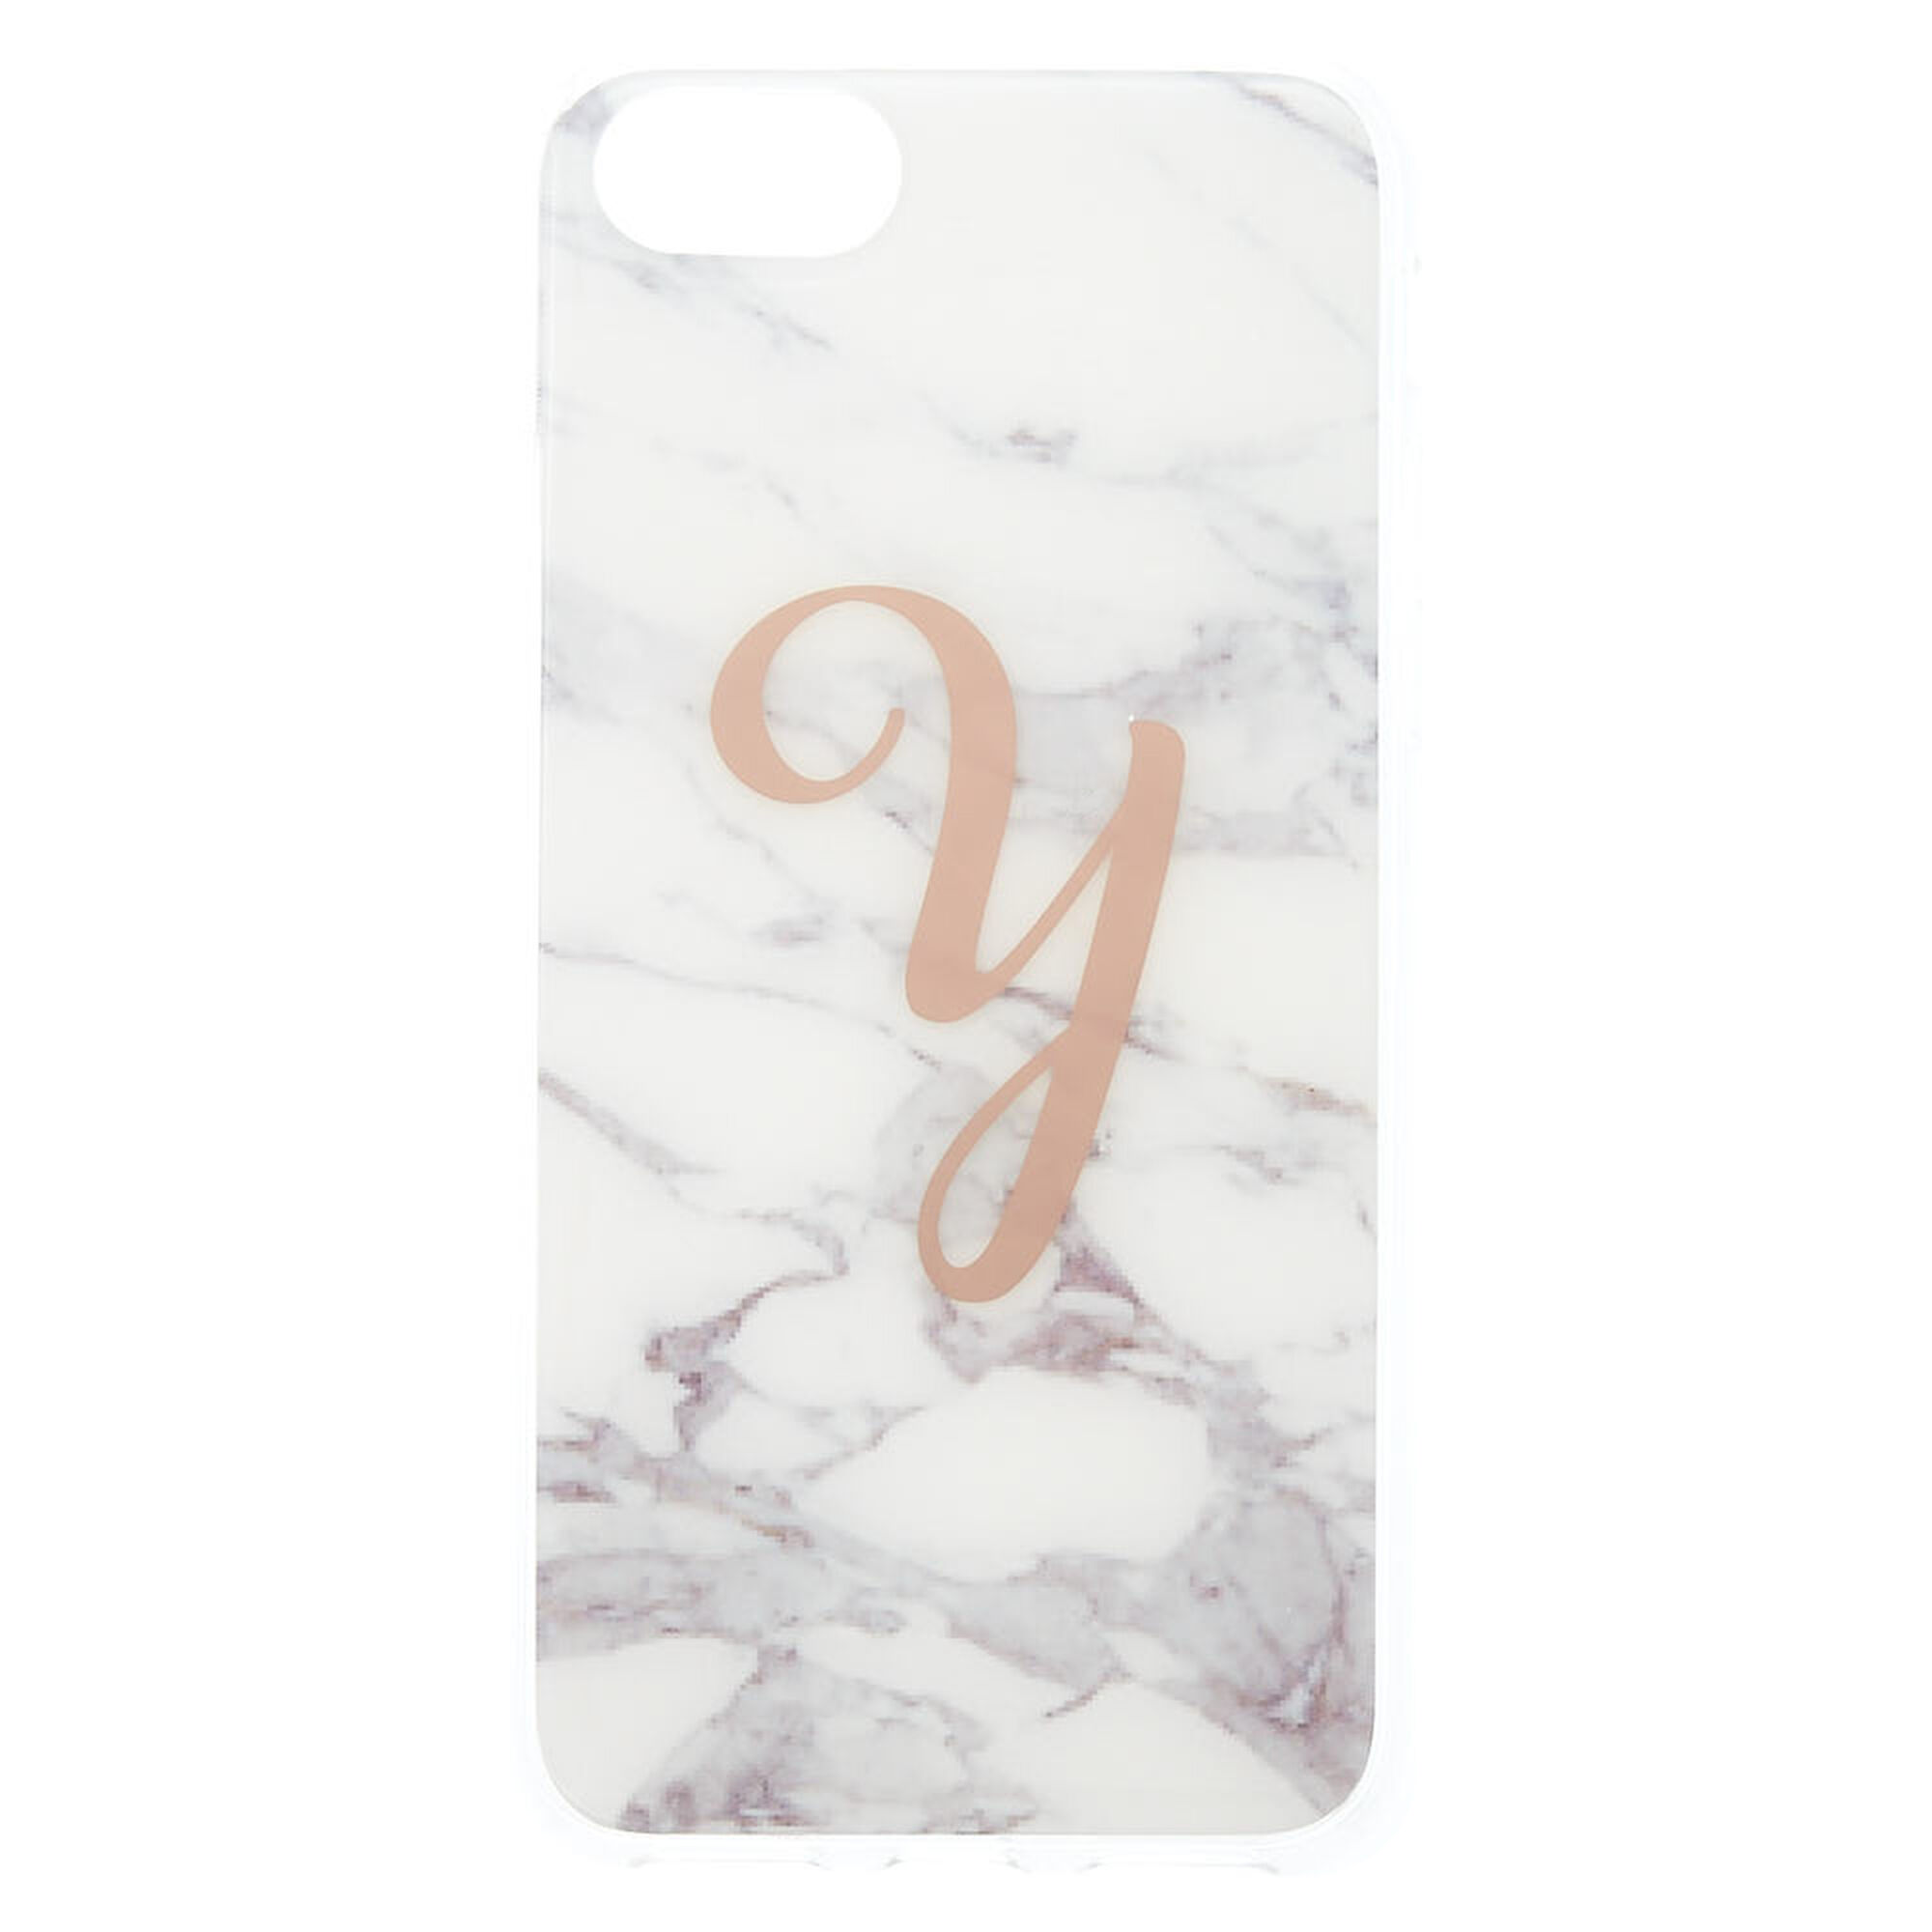 los angeles d56dd 1958c Marble Y Initial Phone Case - Fits iPhone 6/7/8